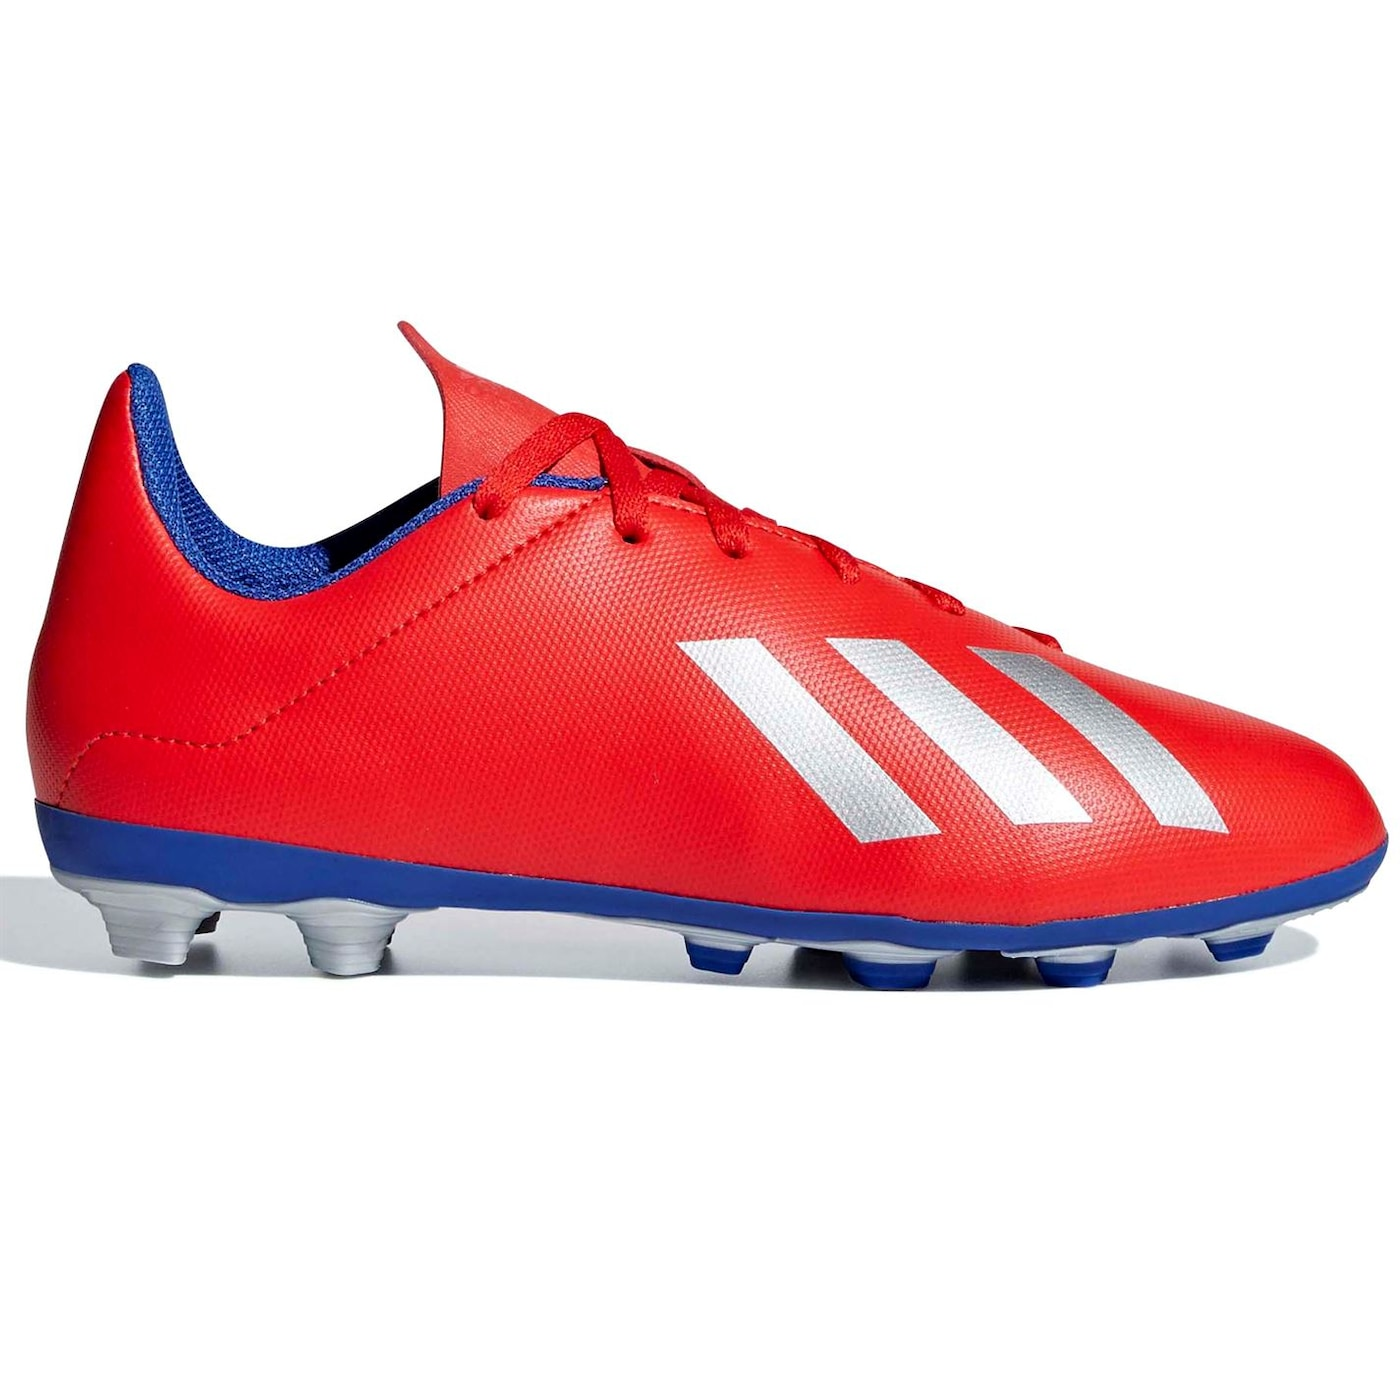 Adidas X 18.4 Junior FG Football Boots